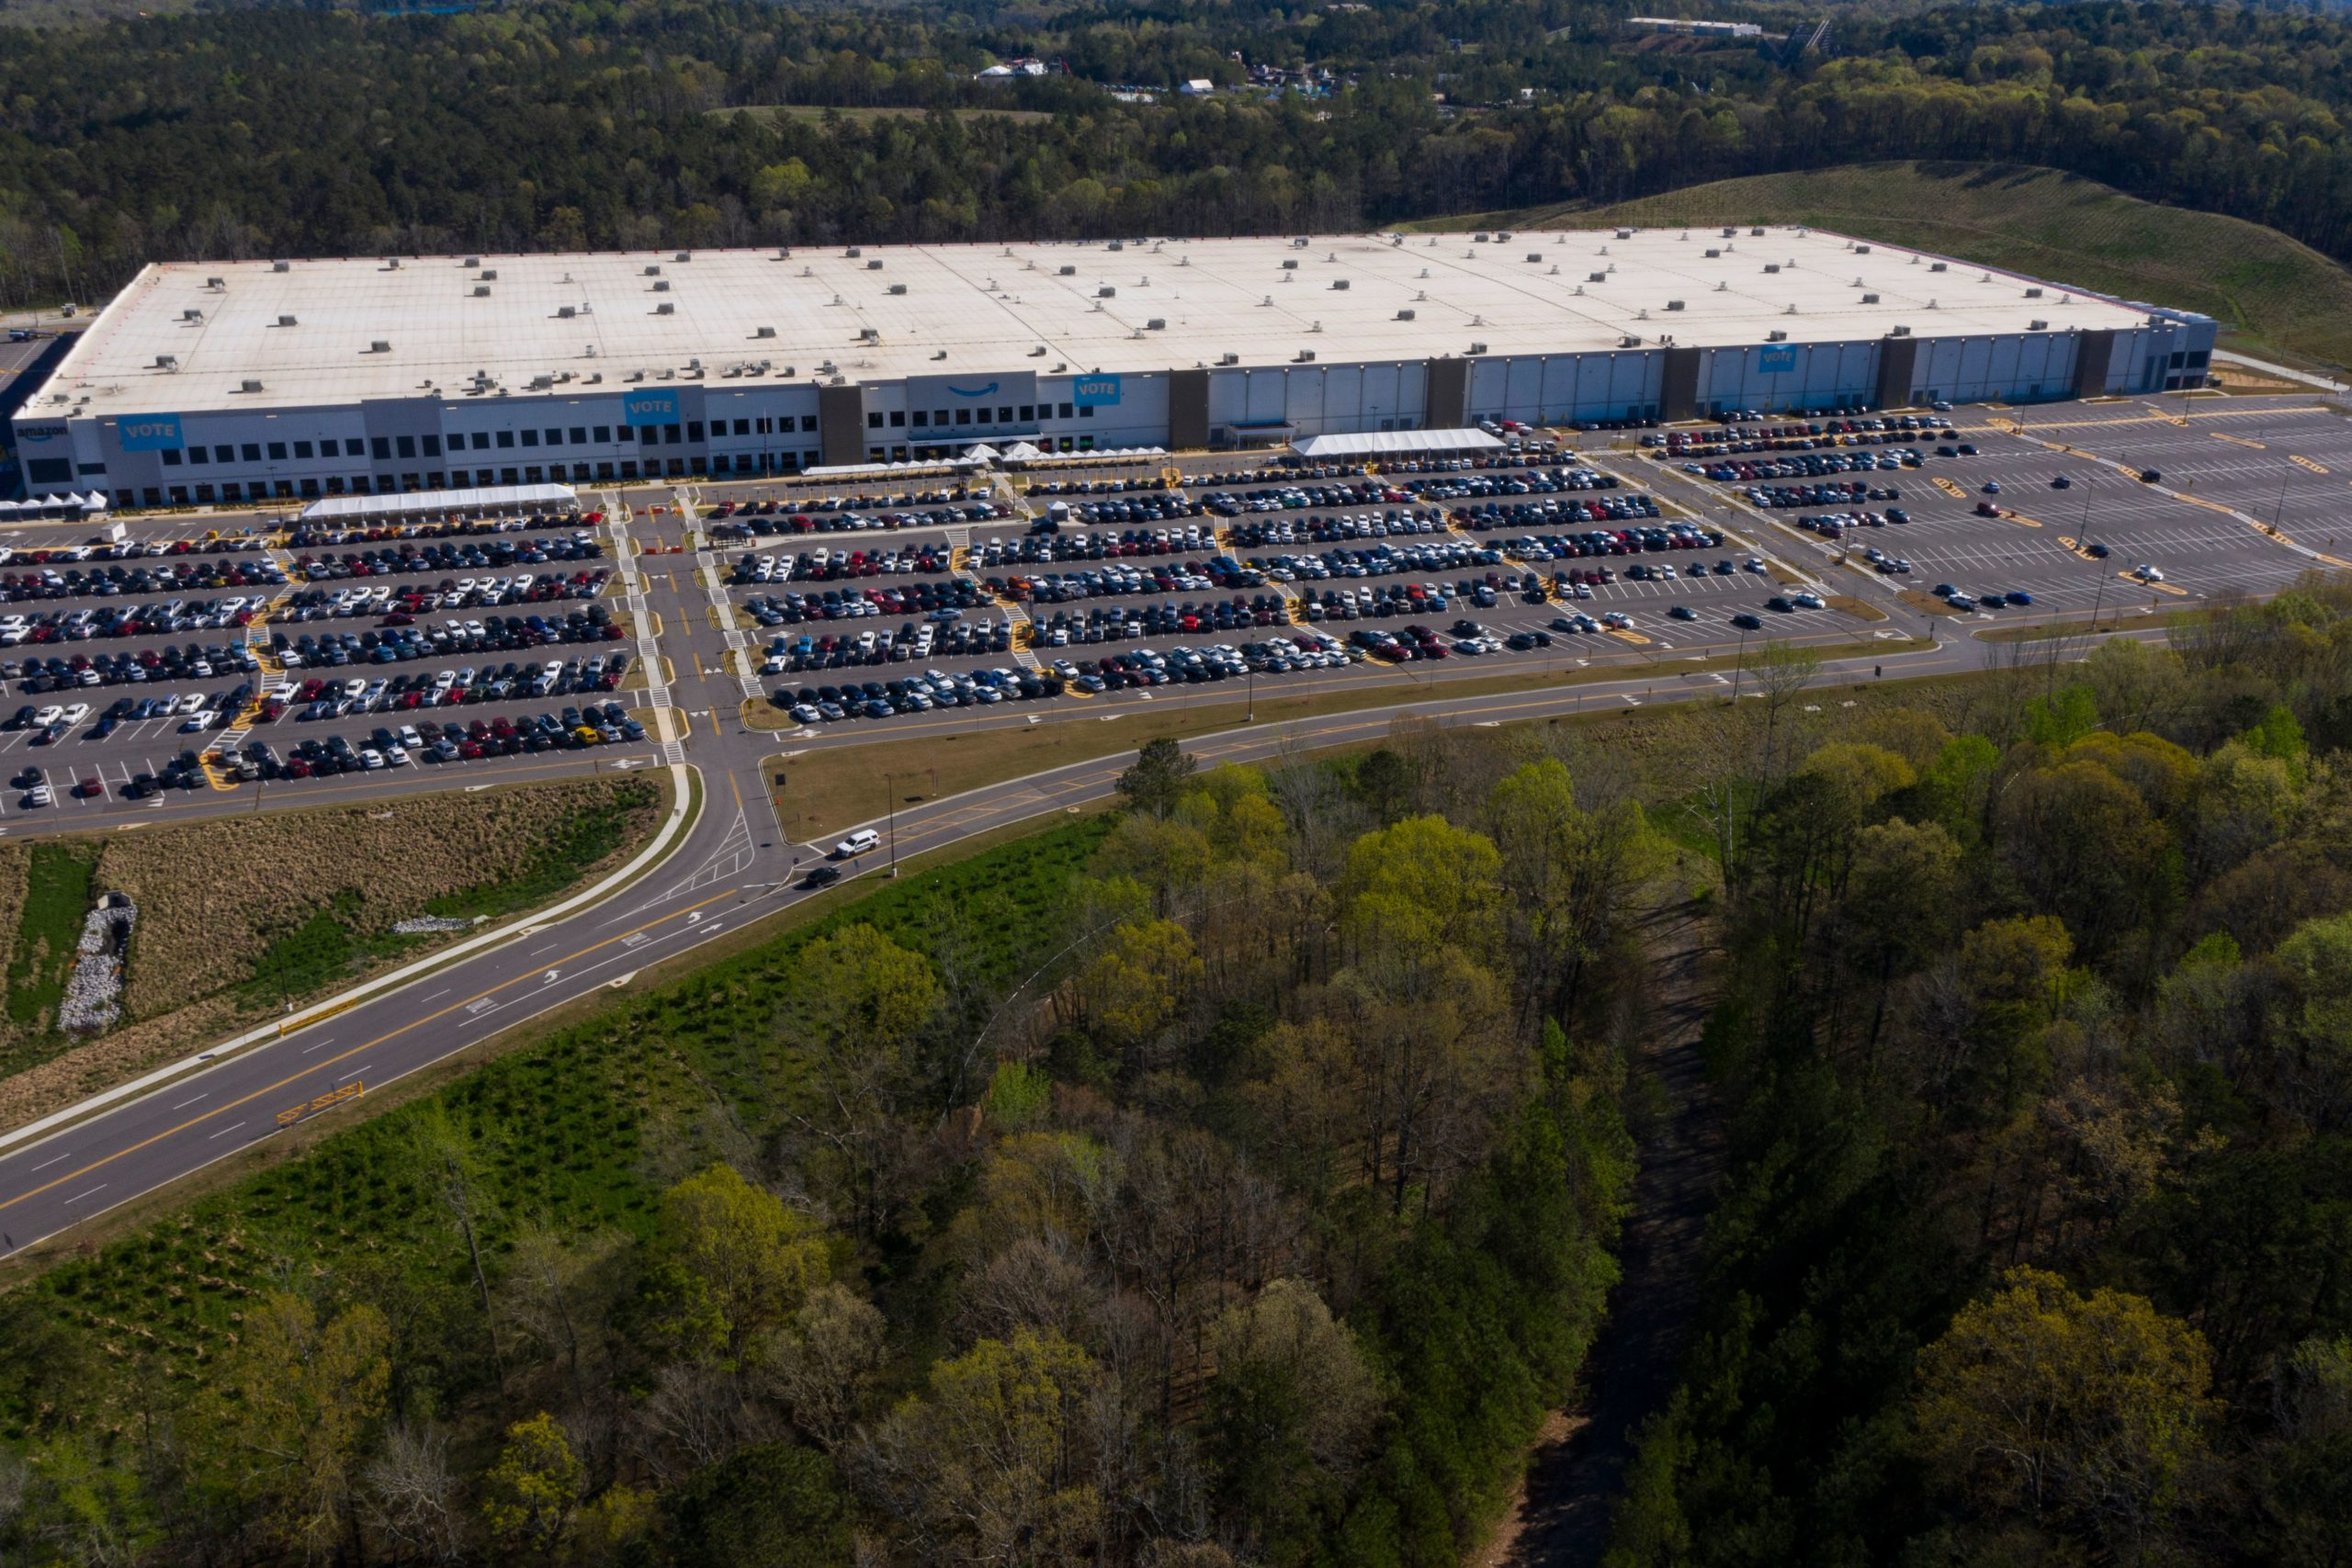 An aerial image shows the Amazon fulfillment center in Bessemer, Alabama on March 29. (Patrick T. Fallon/AFP via Getty Images)